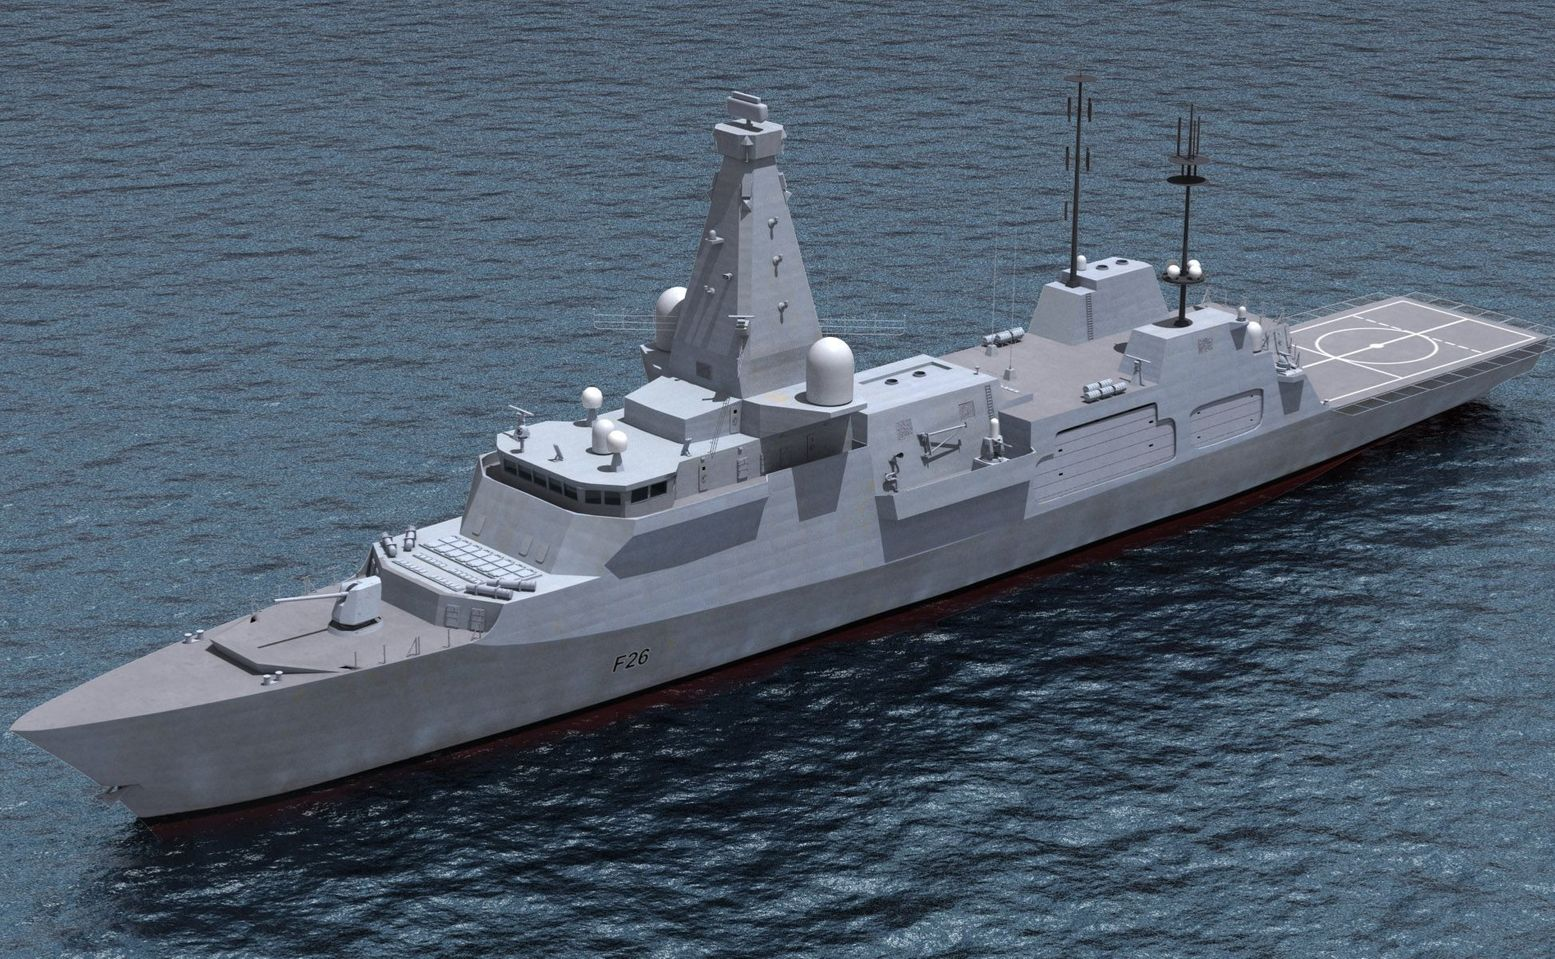 Britain's New Type 26 Frigate Is Going to Be Amazing